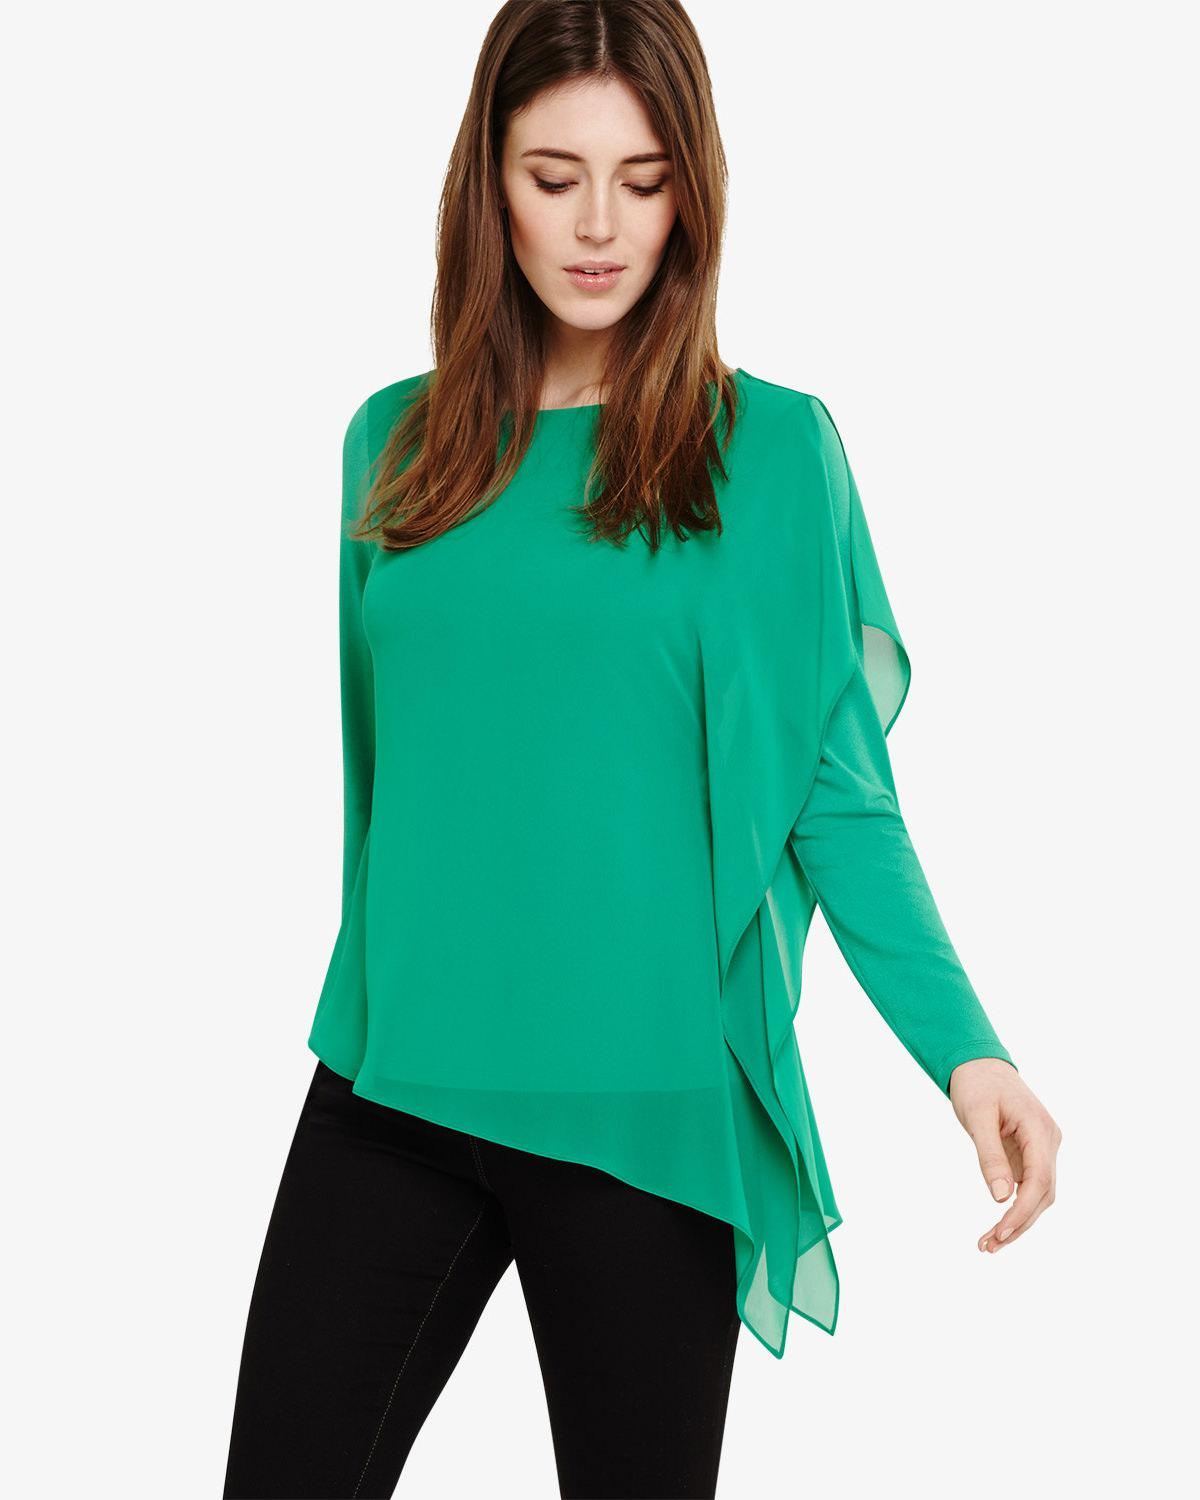 867a42b6 Phase Eight Camille Chiffon Layer Top in Green - Save 38% - Lyst